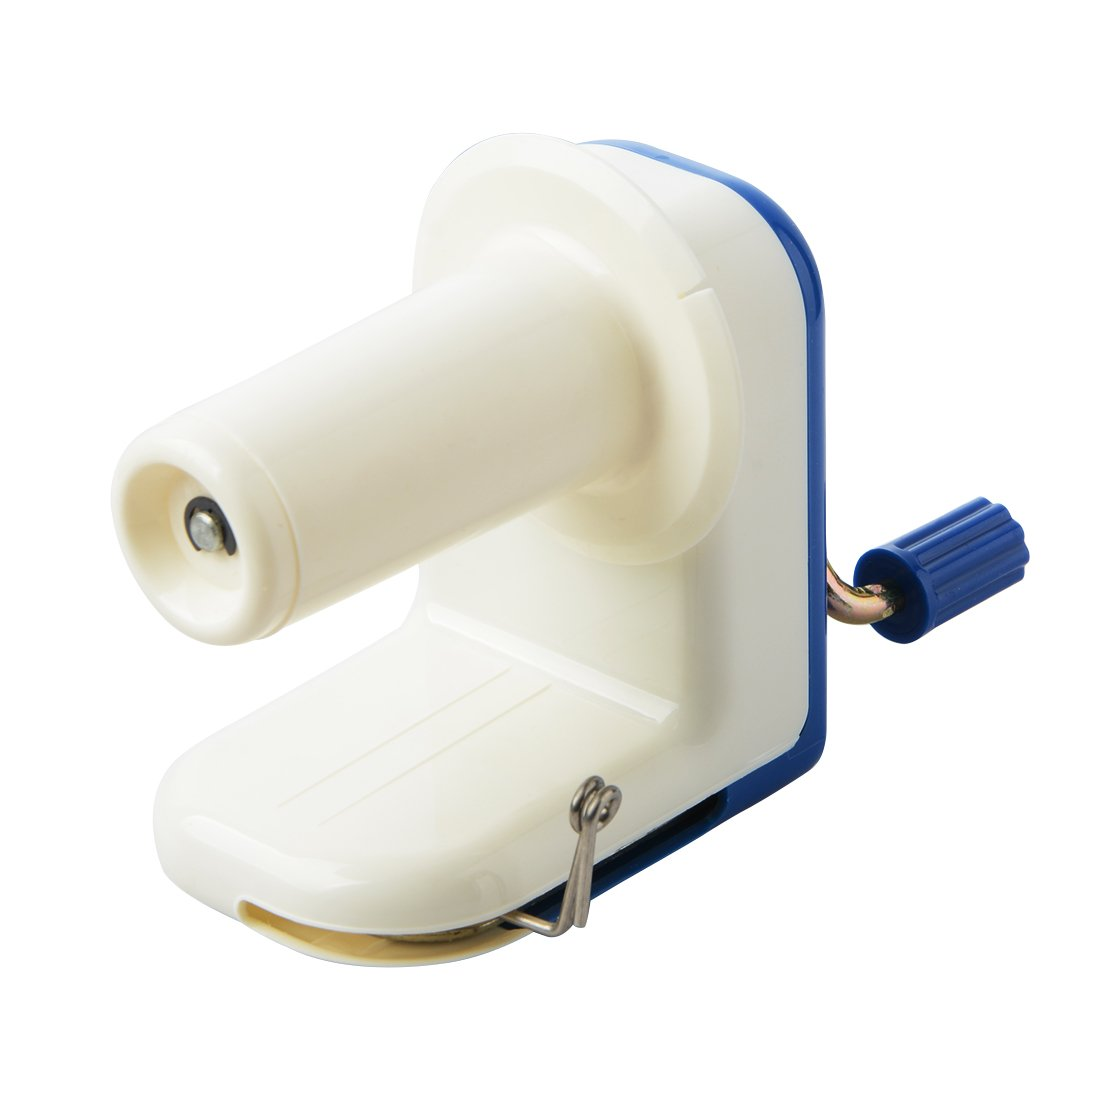 Yarn Ball Winder, YUIOP Wool Winder, Hand Operated,Outstanding Solution for Your Yarn Storage Sewing Knitting and Crocheting Needs